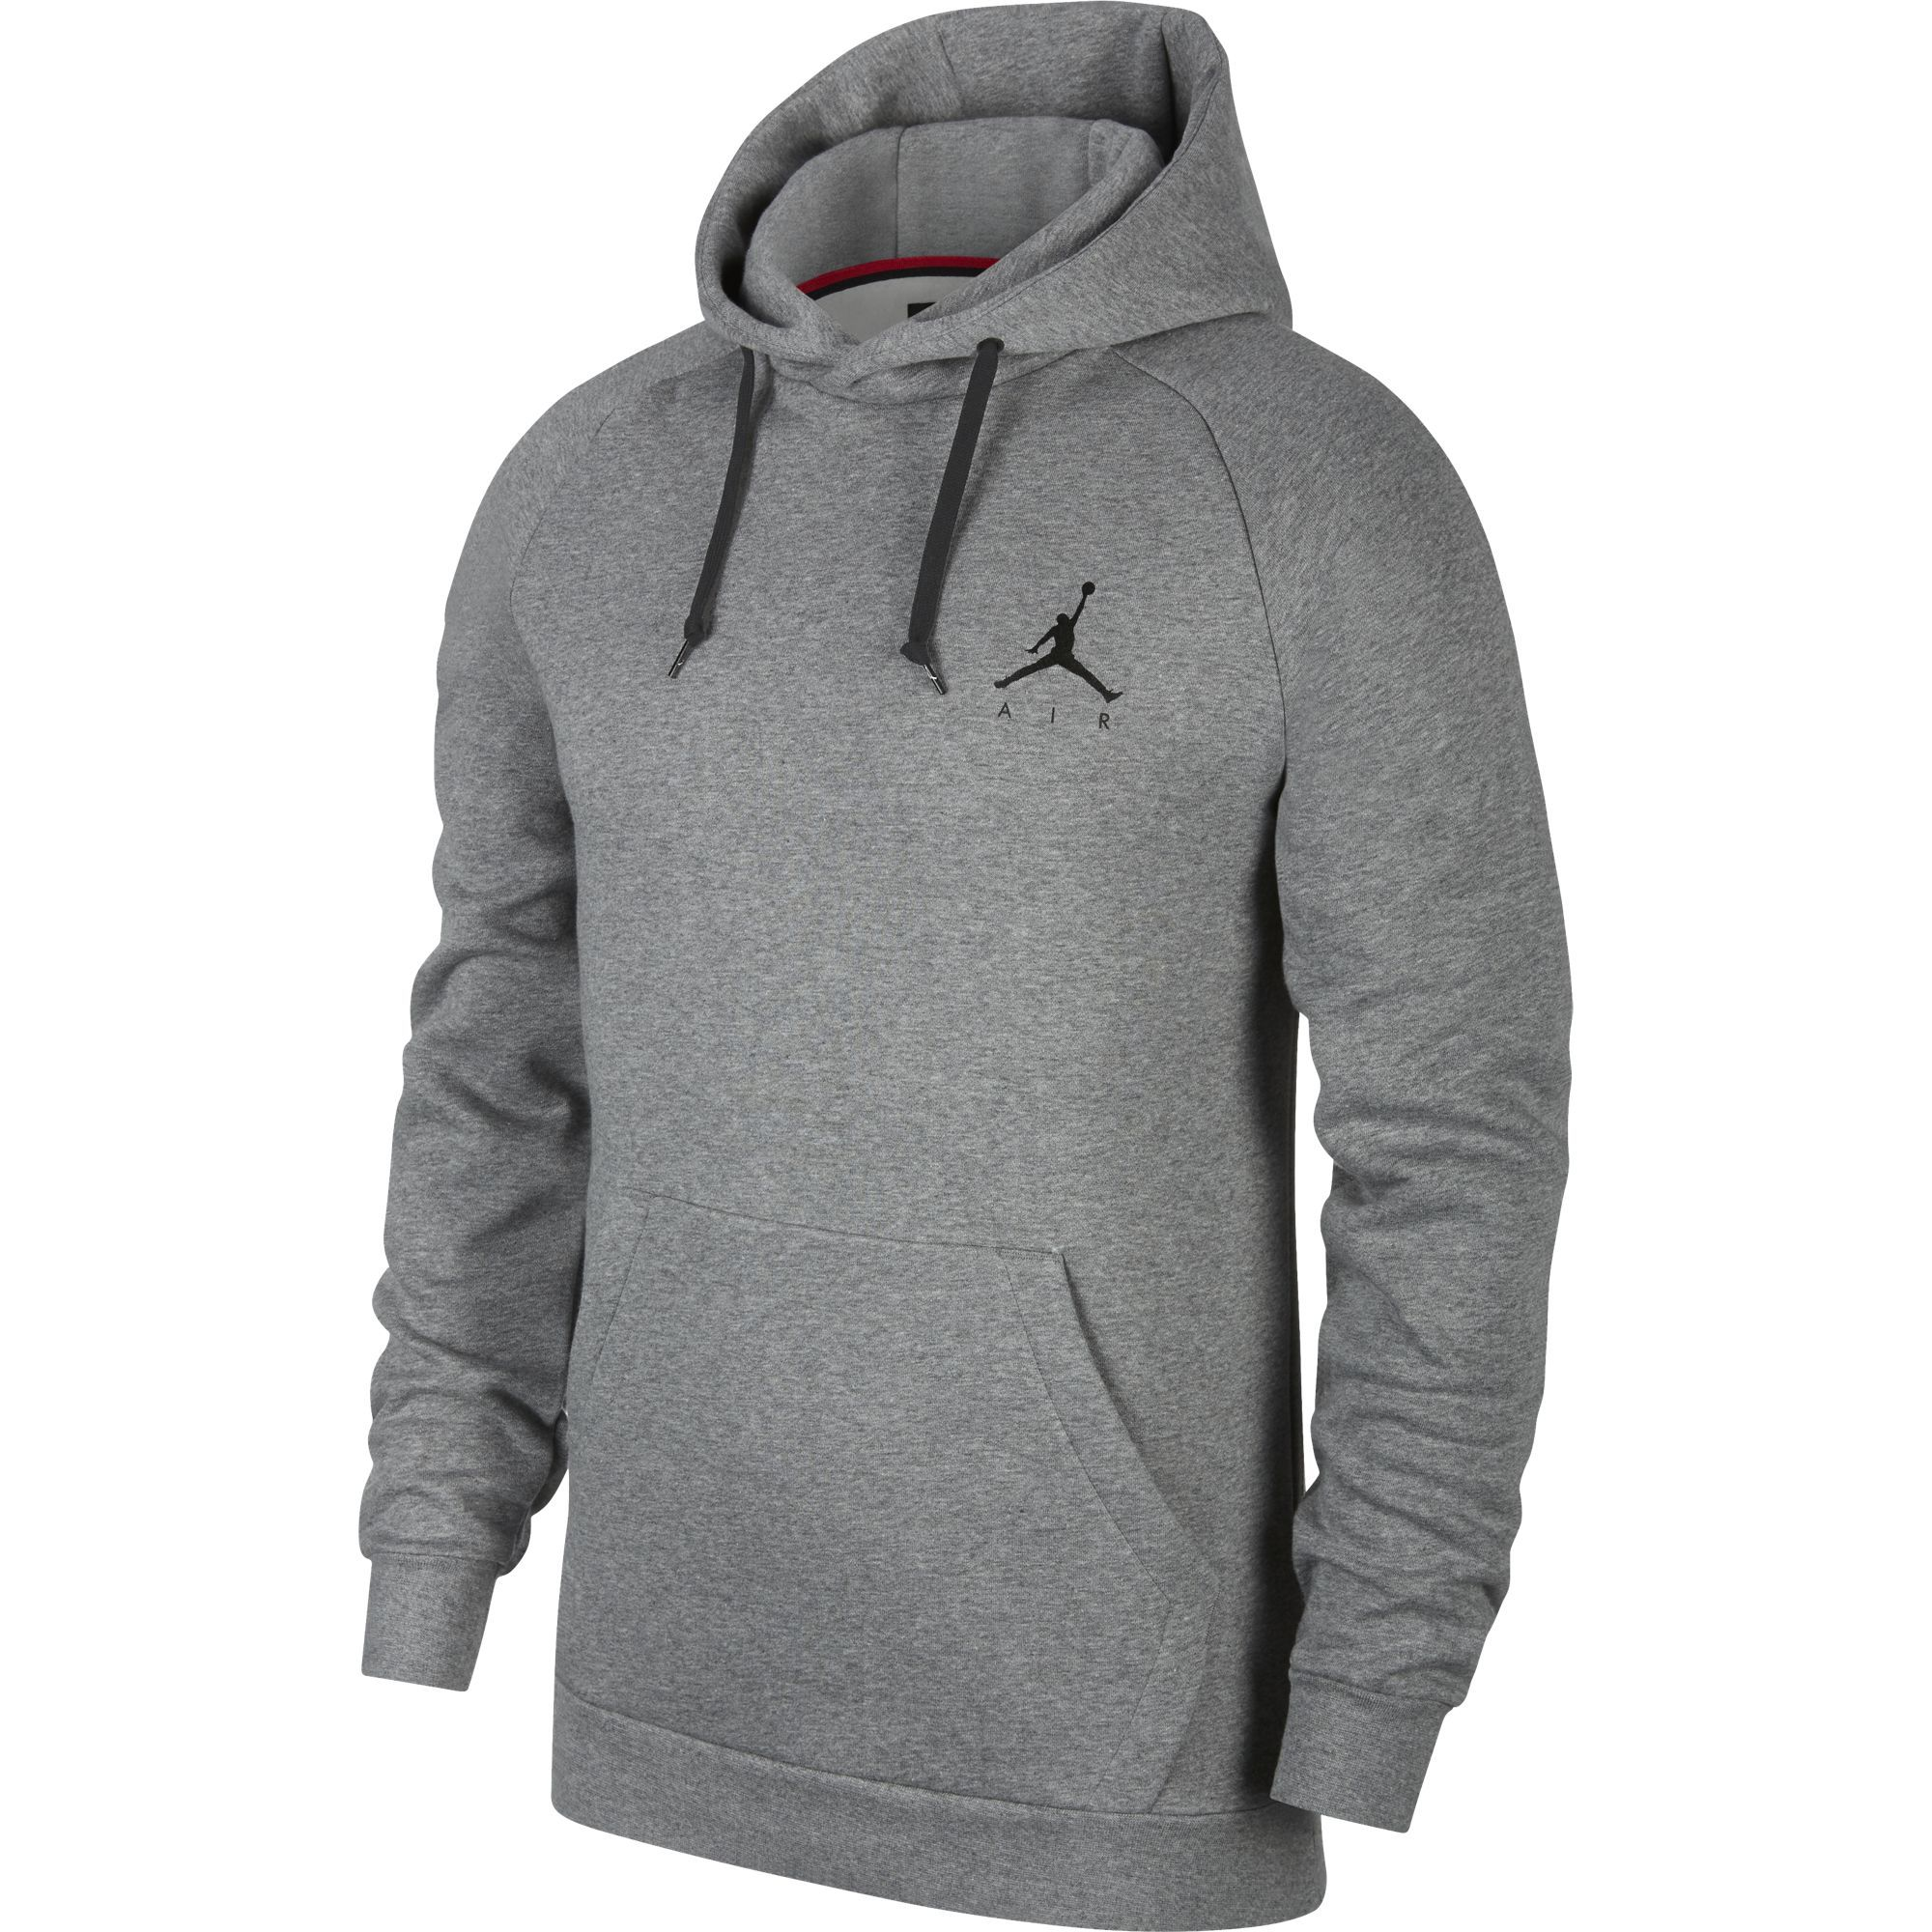 Nike Jordan Jumpman Pullover Fleece Hoodie - Carbon Heather/Black